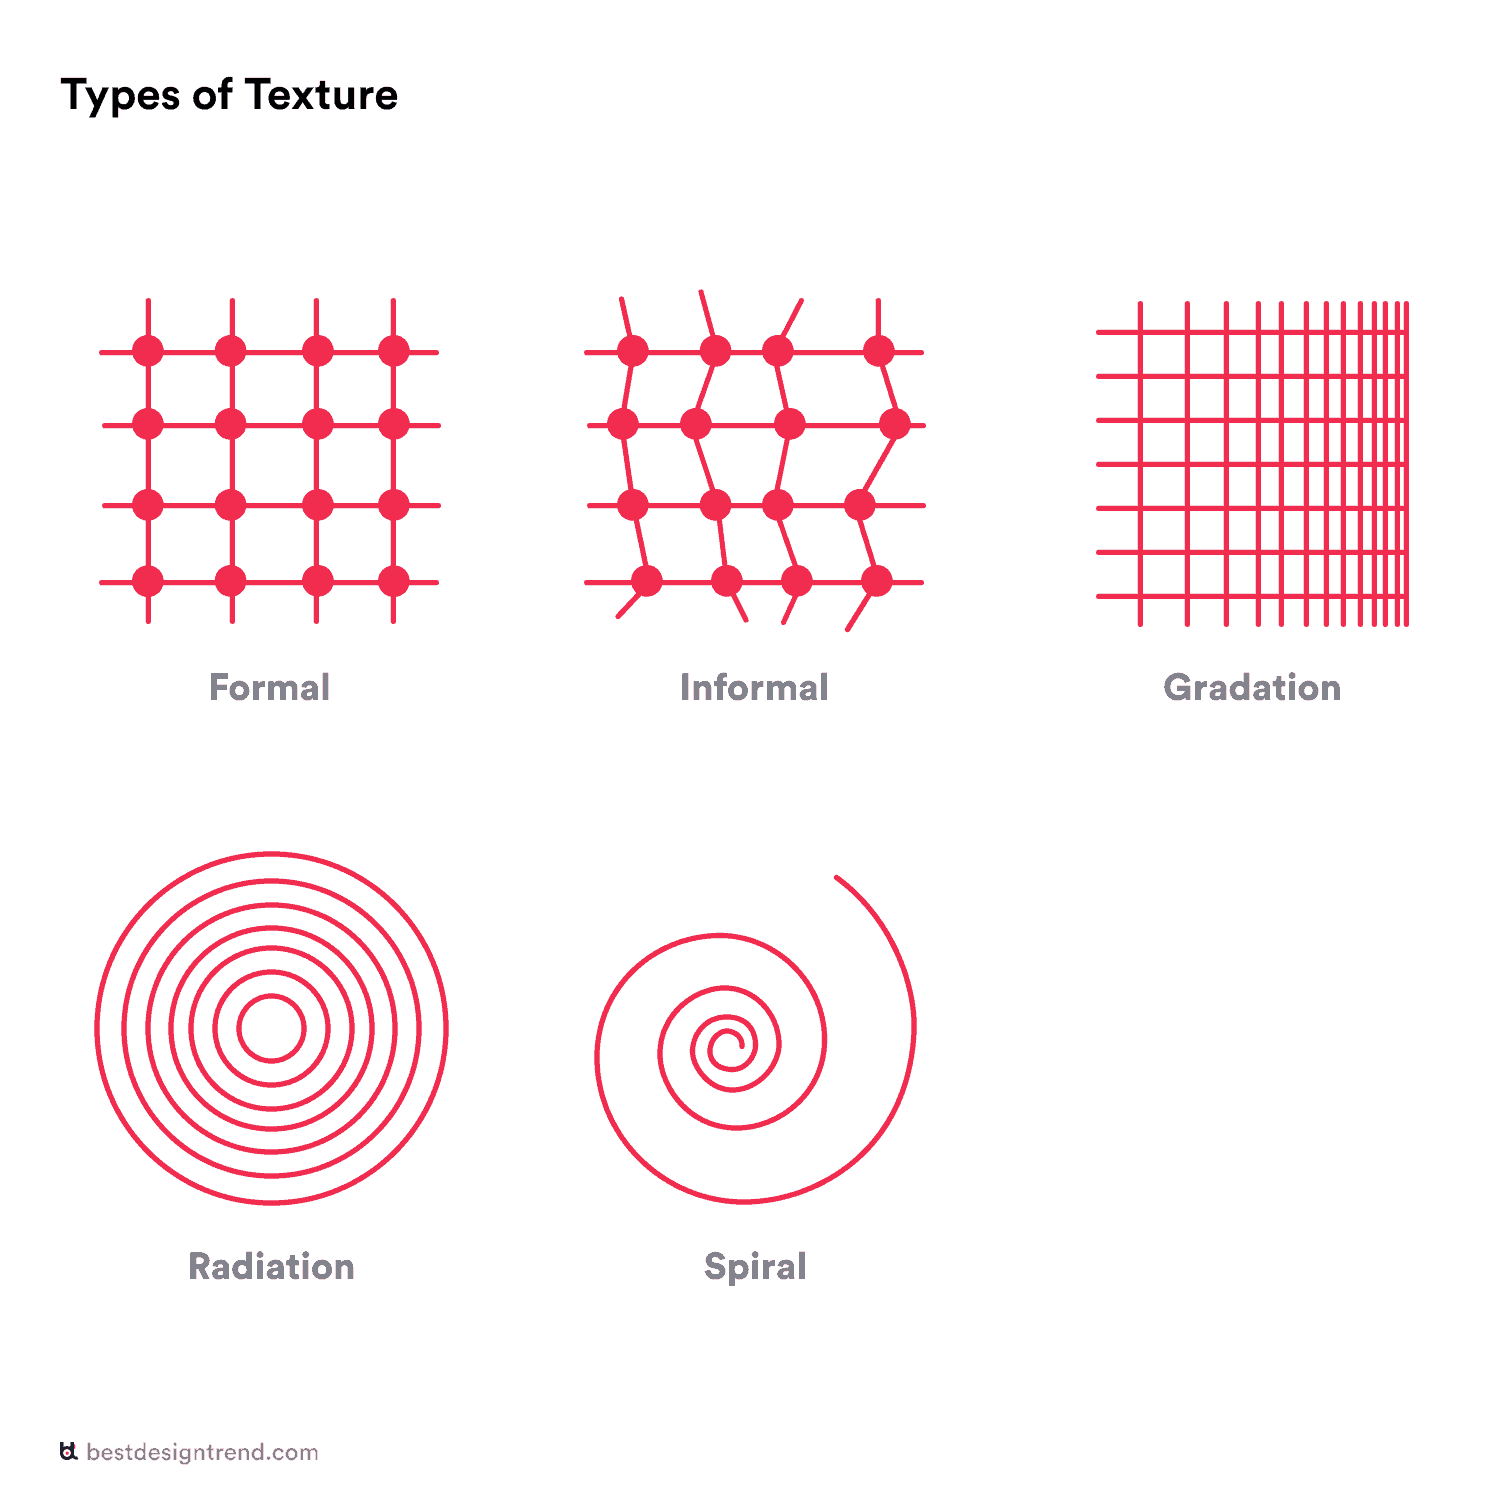 elements of design: types of texture